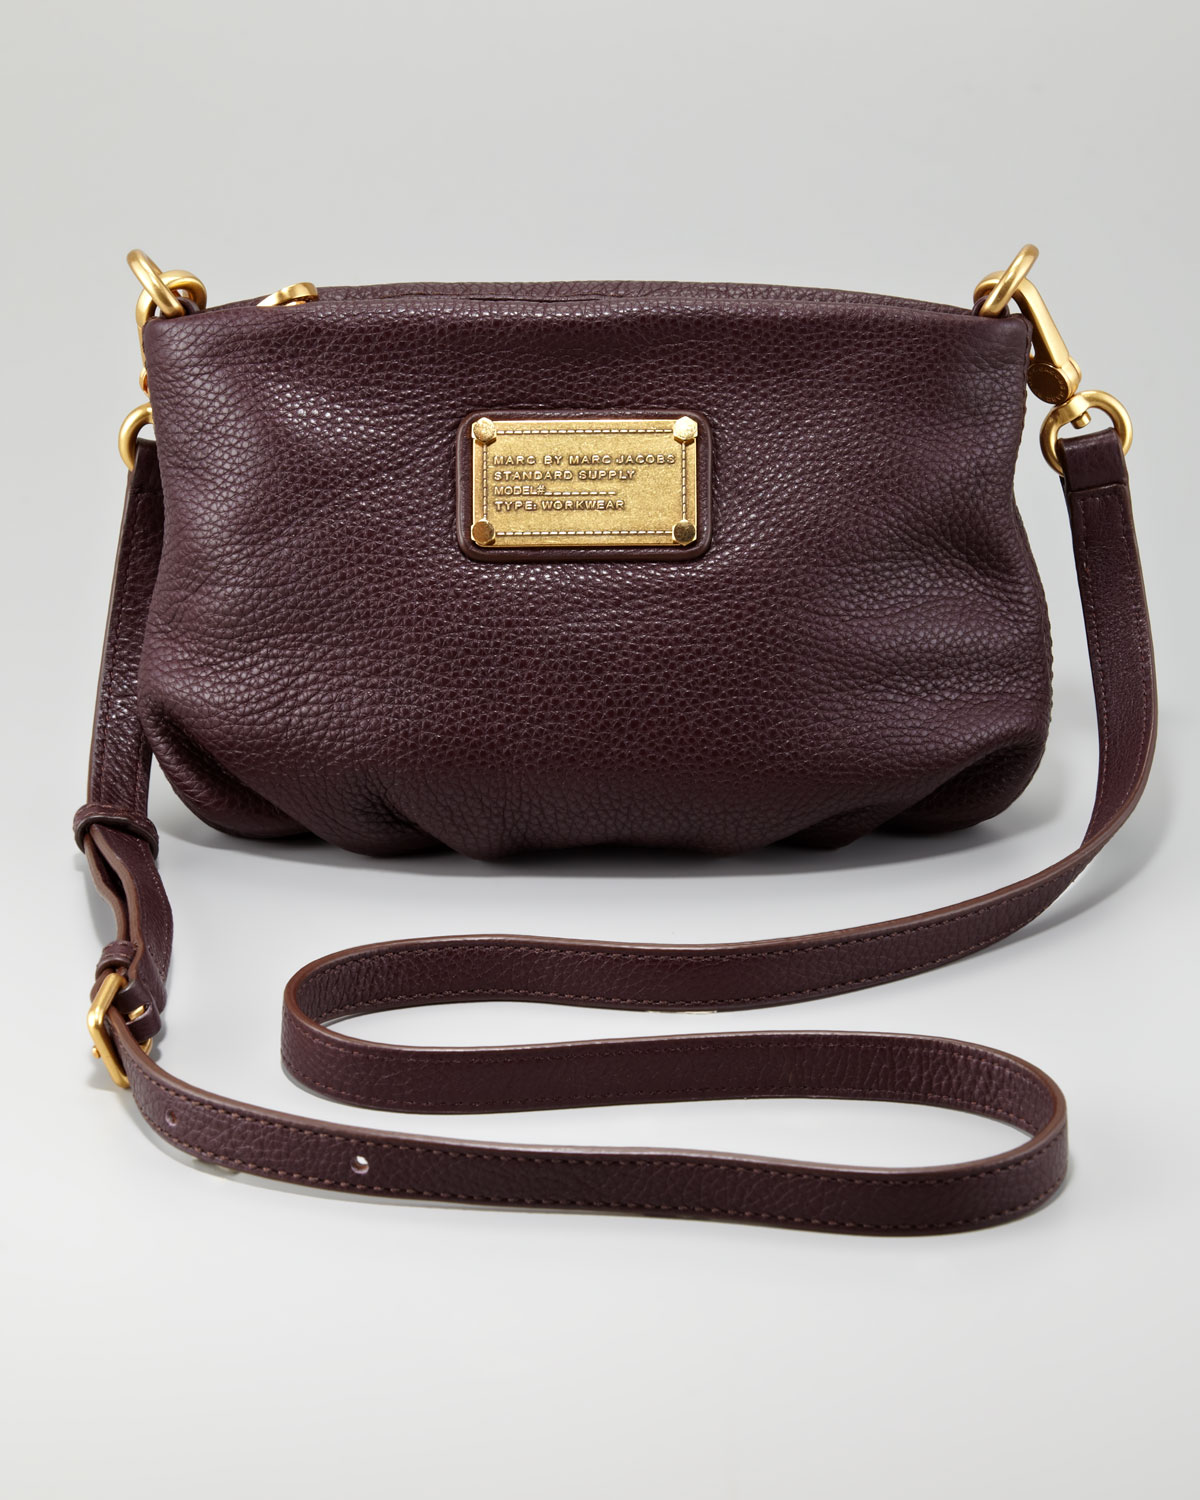 Marc by marc jacobs Classic Q Percy Crossbody Bag in Brown | Lyst